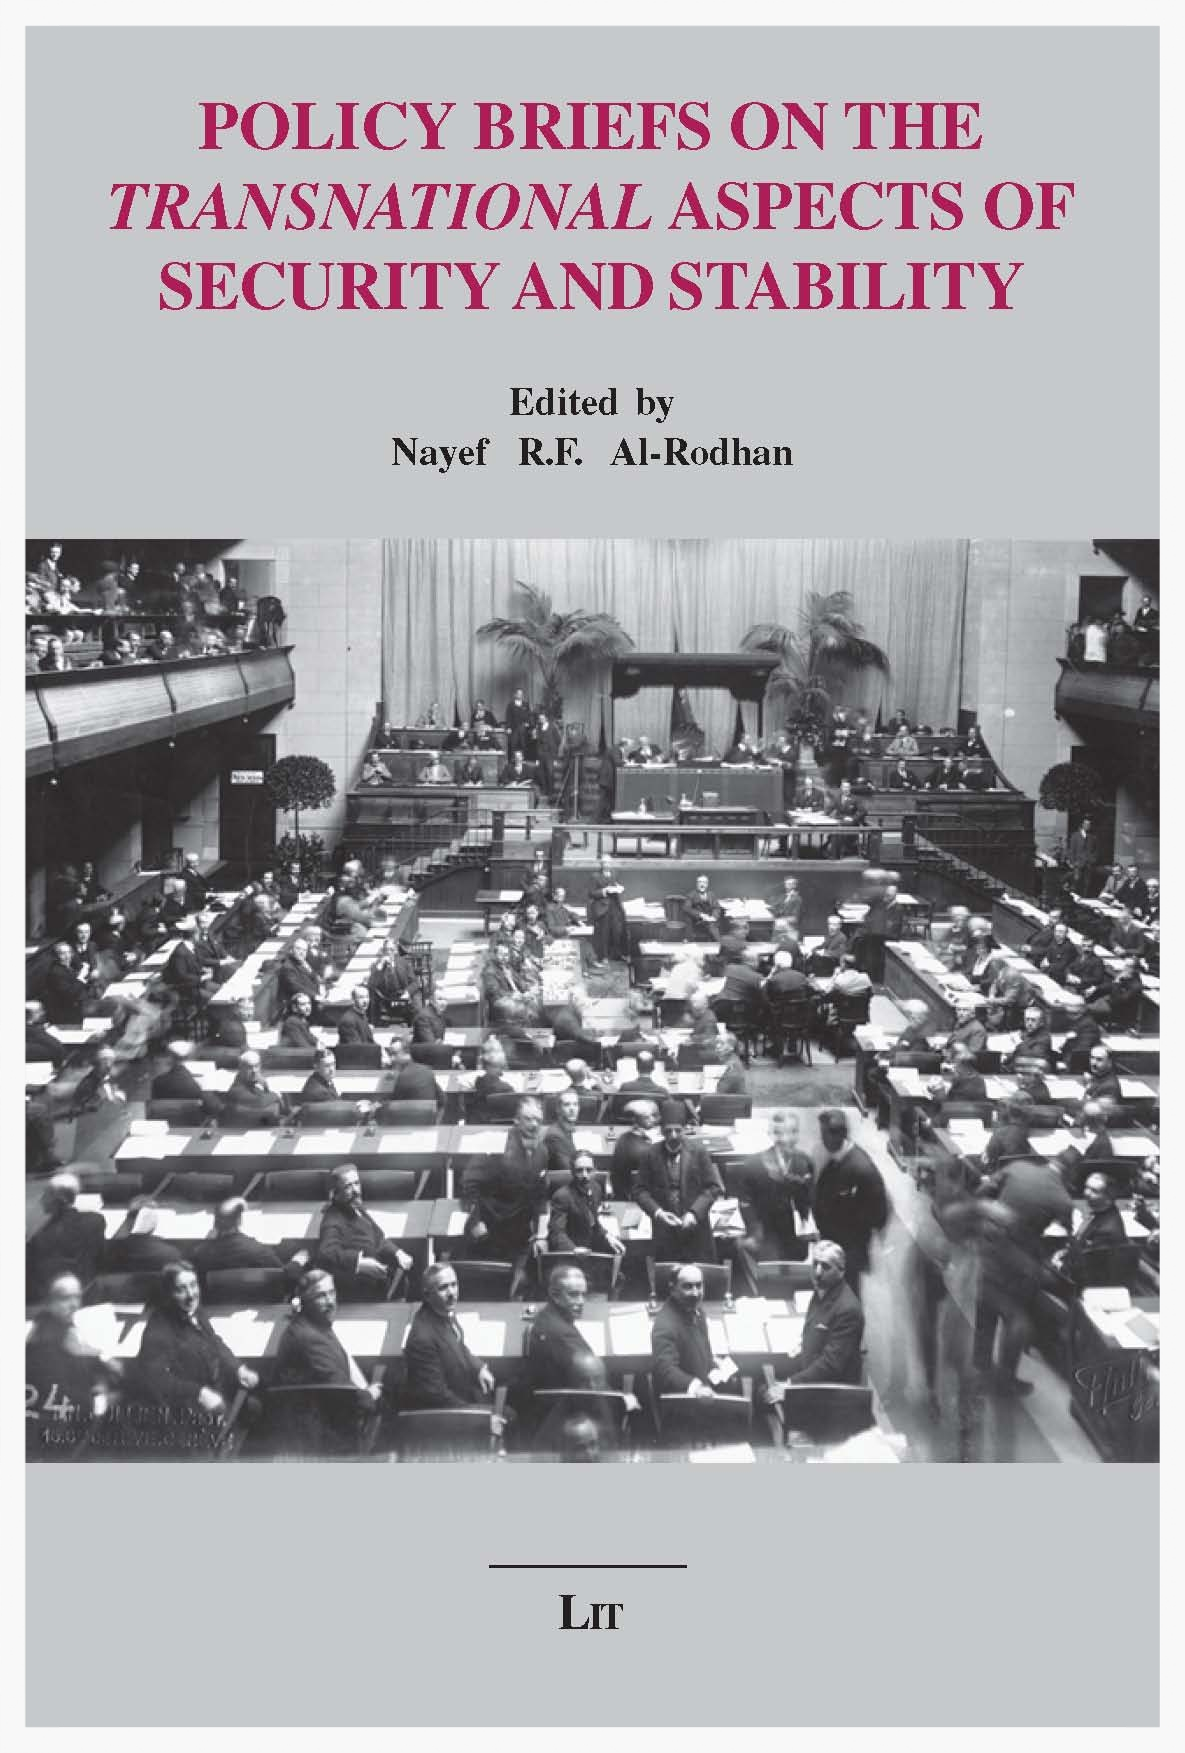 POLICY BRIEFS ON THE TRANSNATIONAL ASPECTS OF SECURITY AND STABILITY